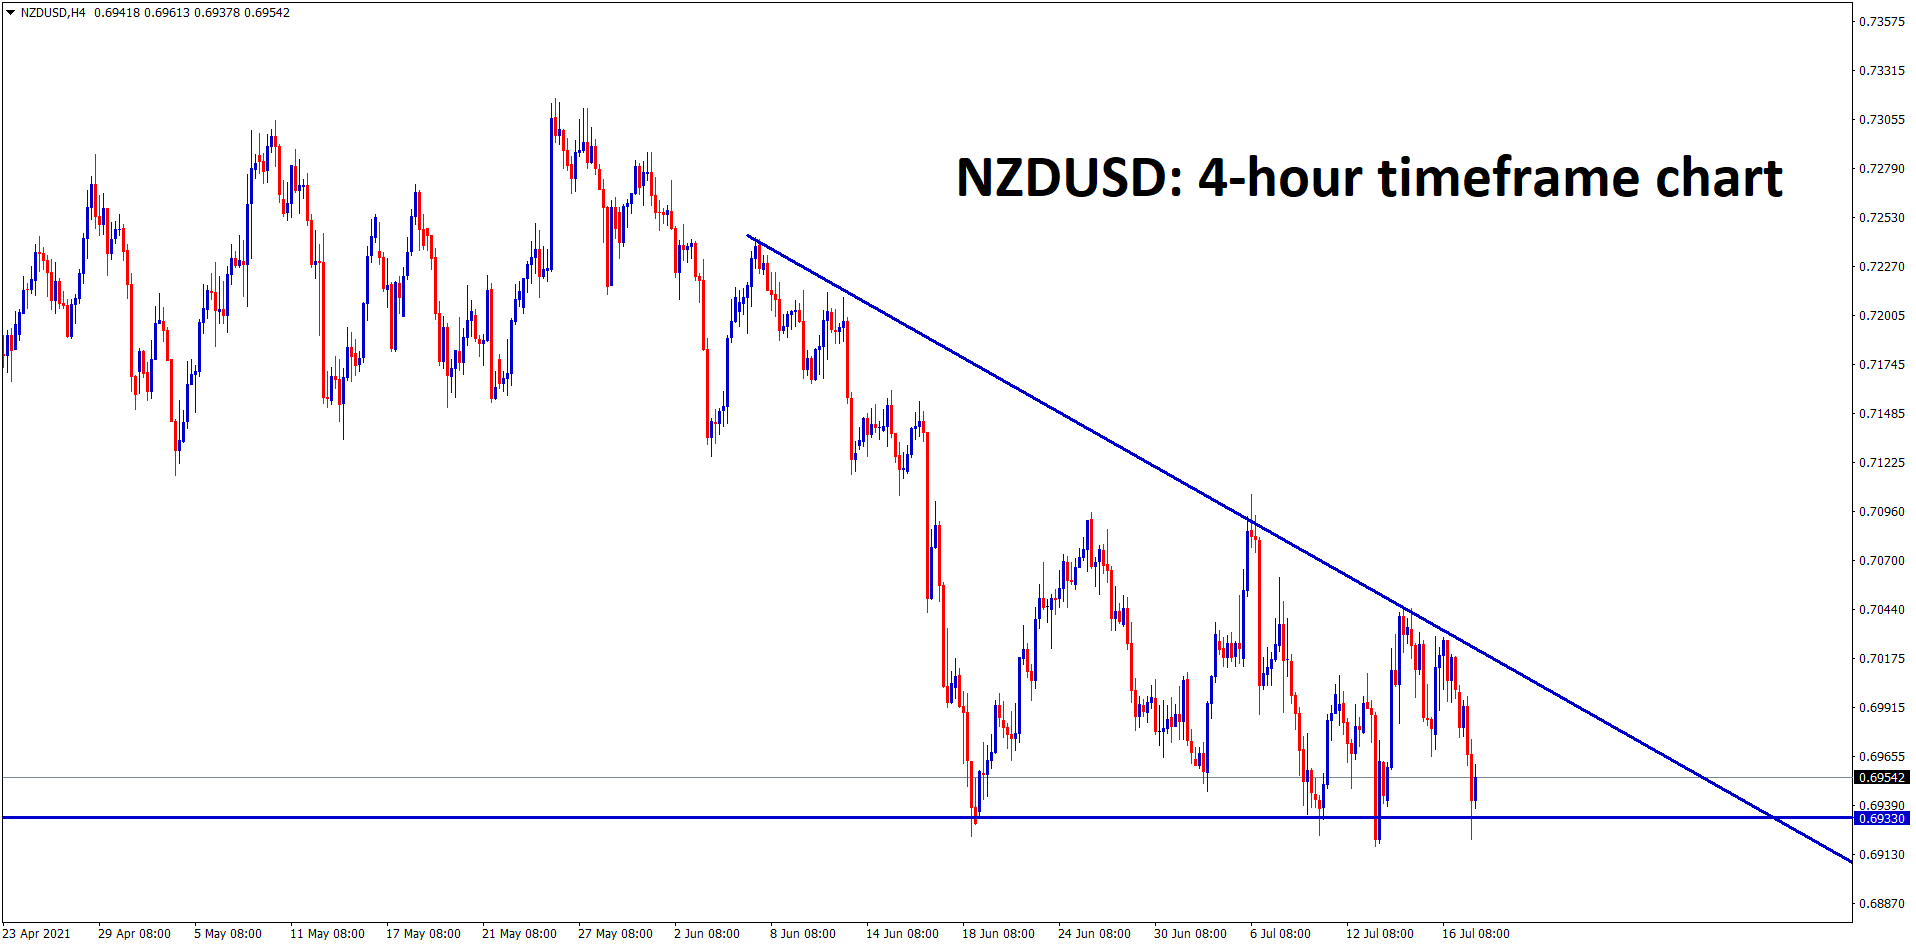 NZDUSD is moving in a Descending Triangle pattern wait for the breakout from this triangle.